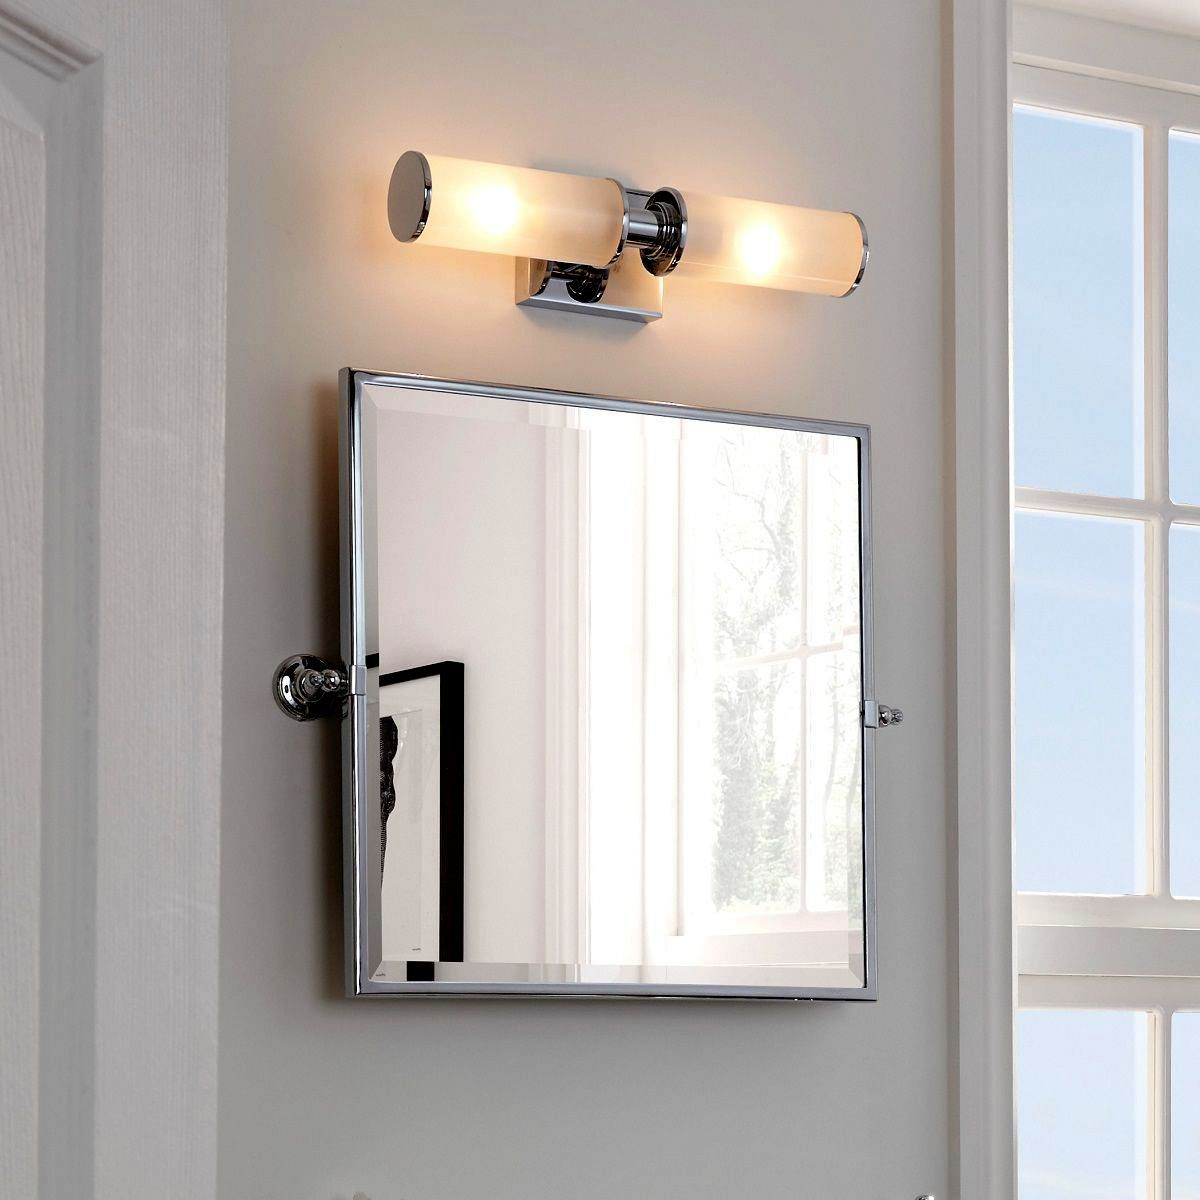 imperial isaac metal frame mirror uk bathrooms. Black Bedroom Furniture Sets. Home Design Ideas